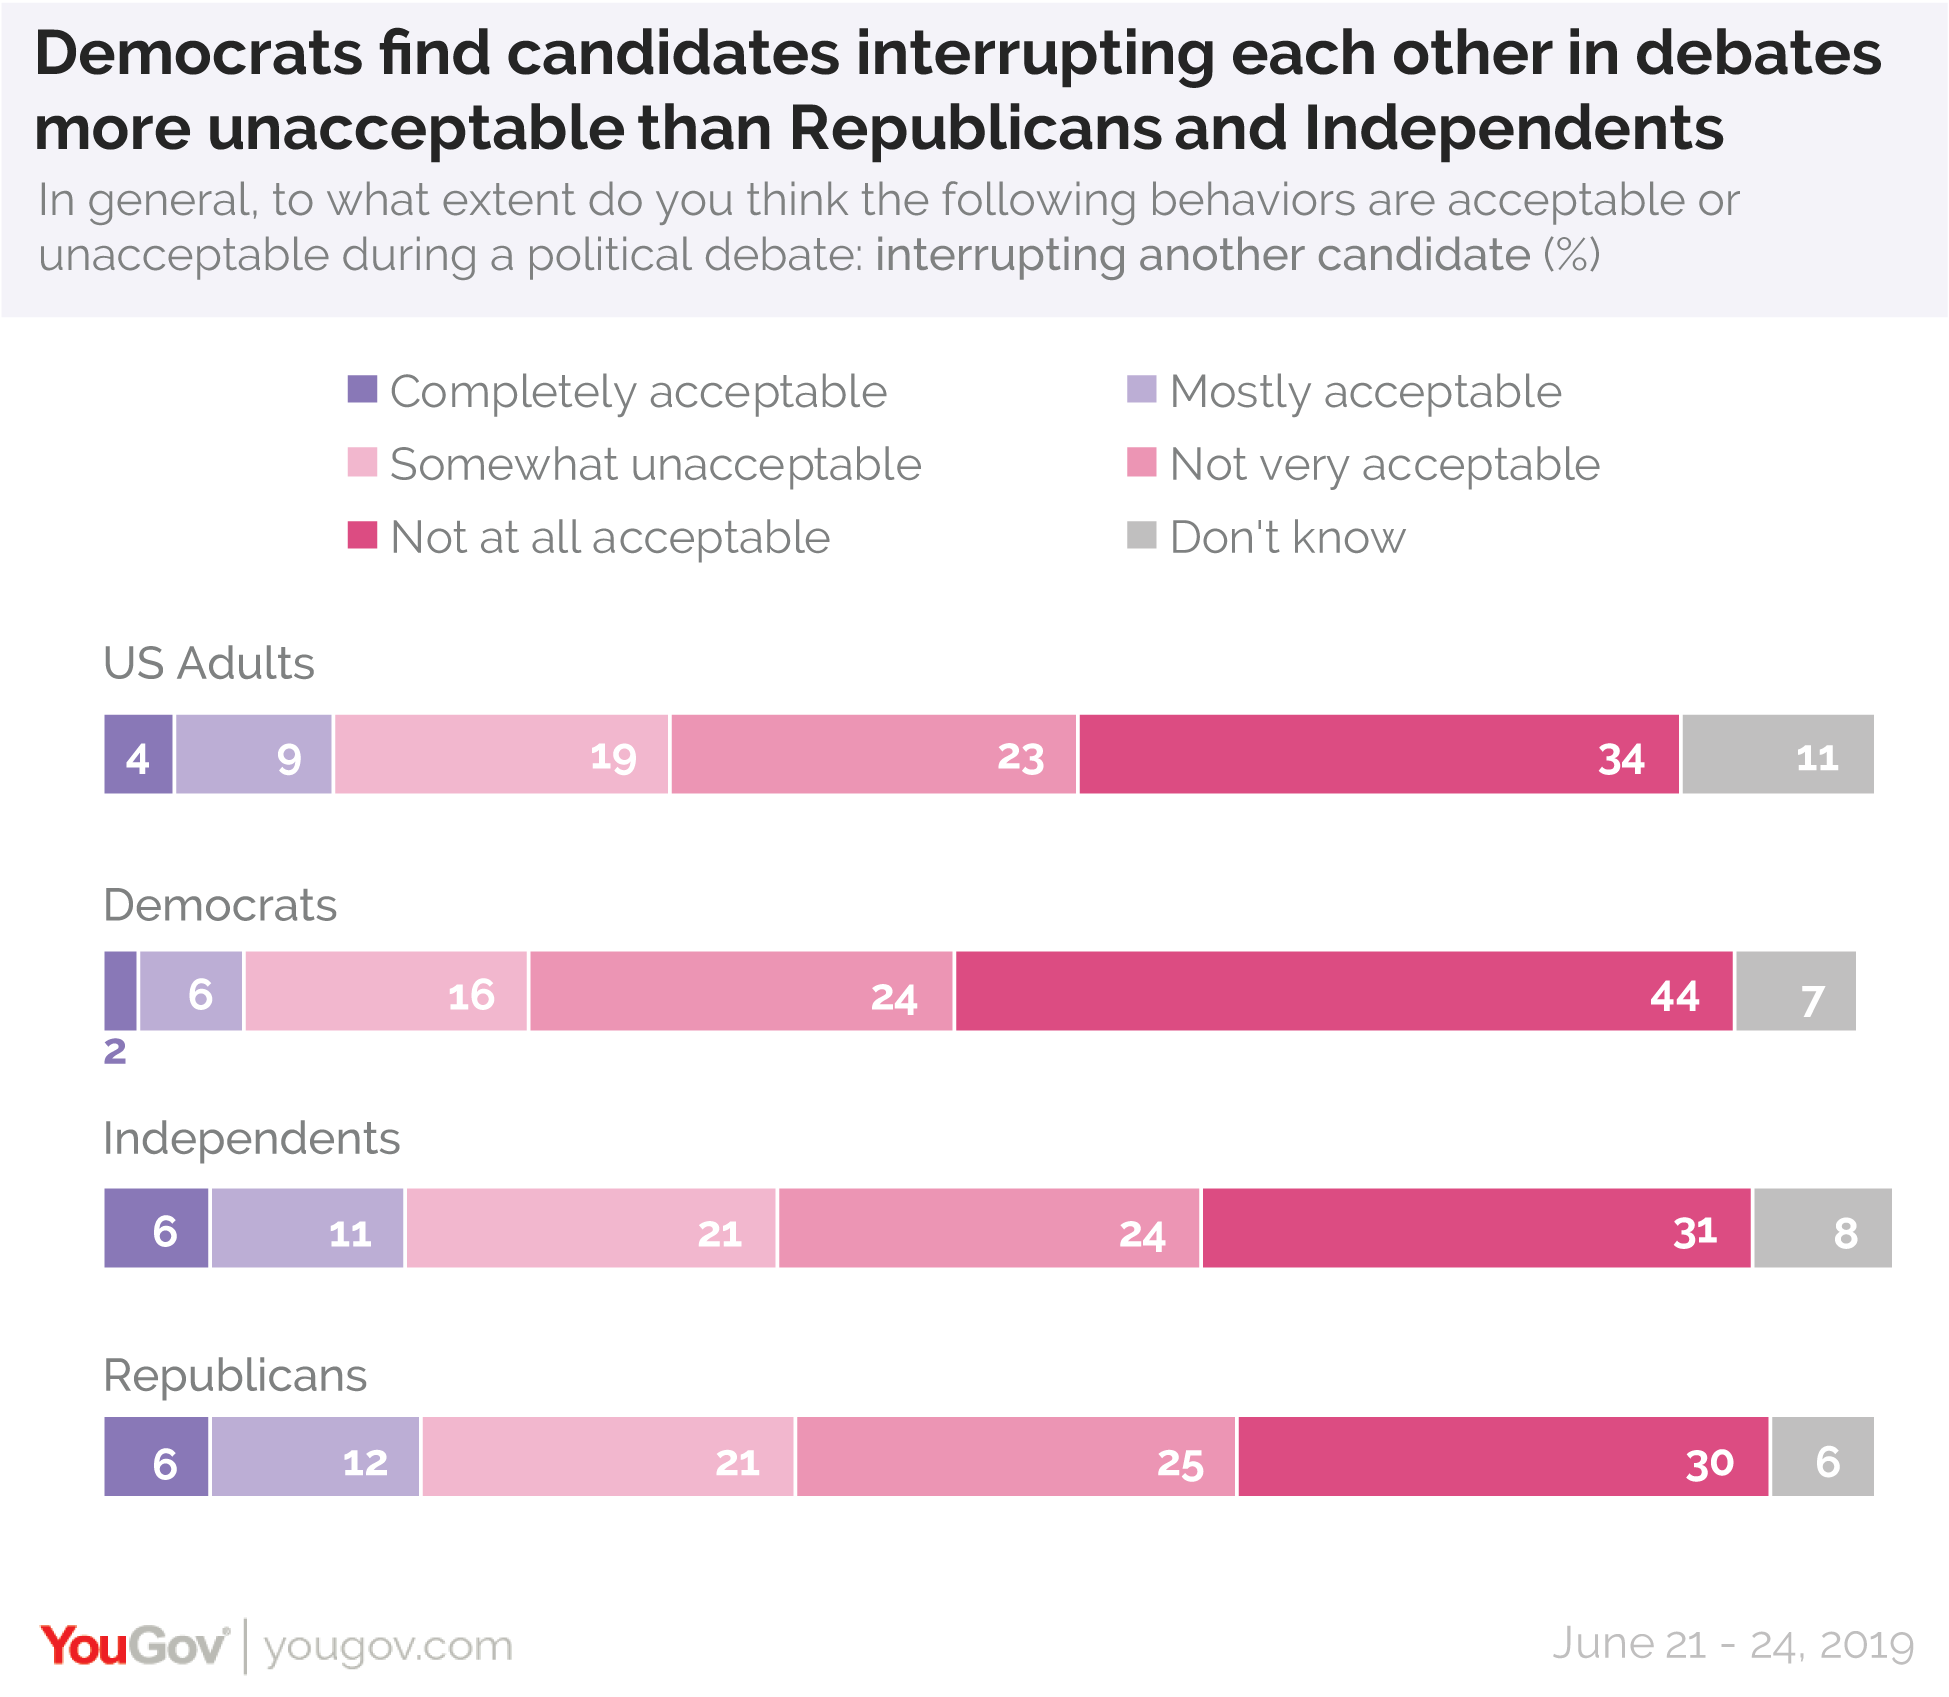 Democrats say candidates interrupting each other in debates is more unacceptable than Republicans and Independents do